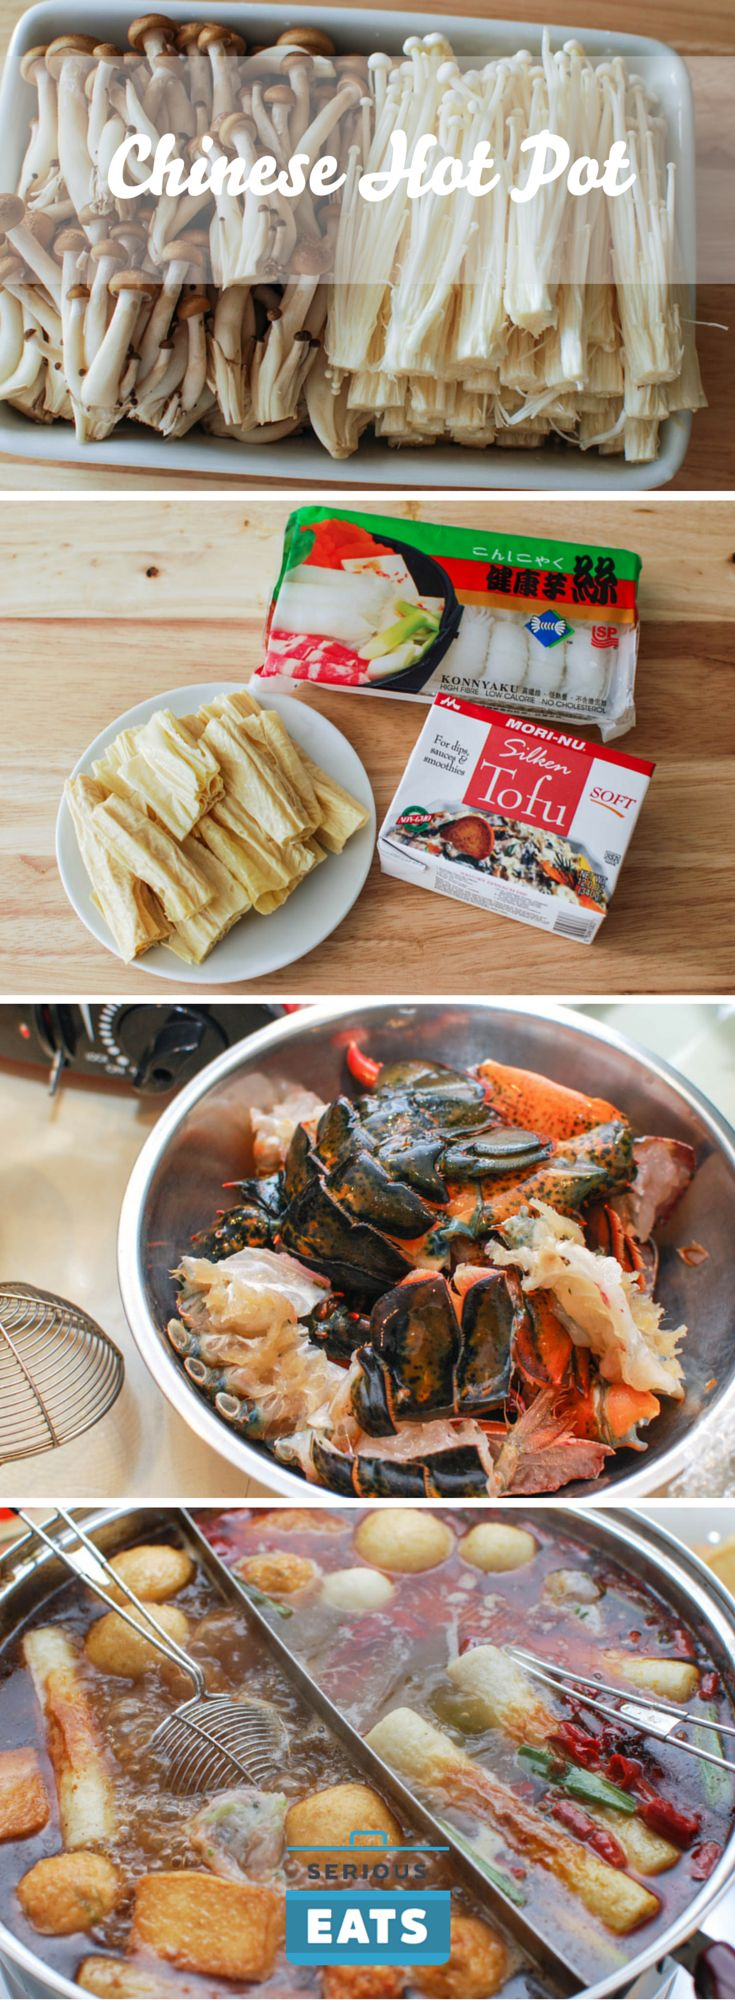 Making hot pot at home is easy.